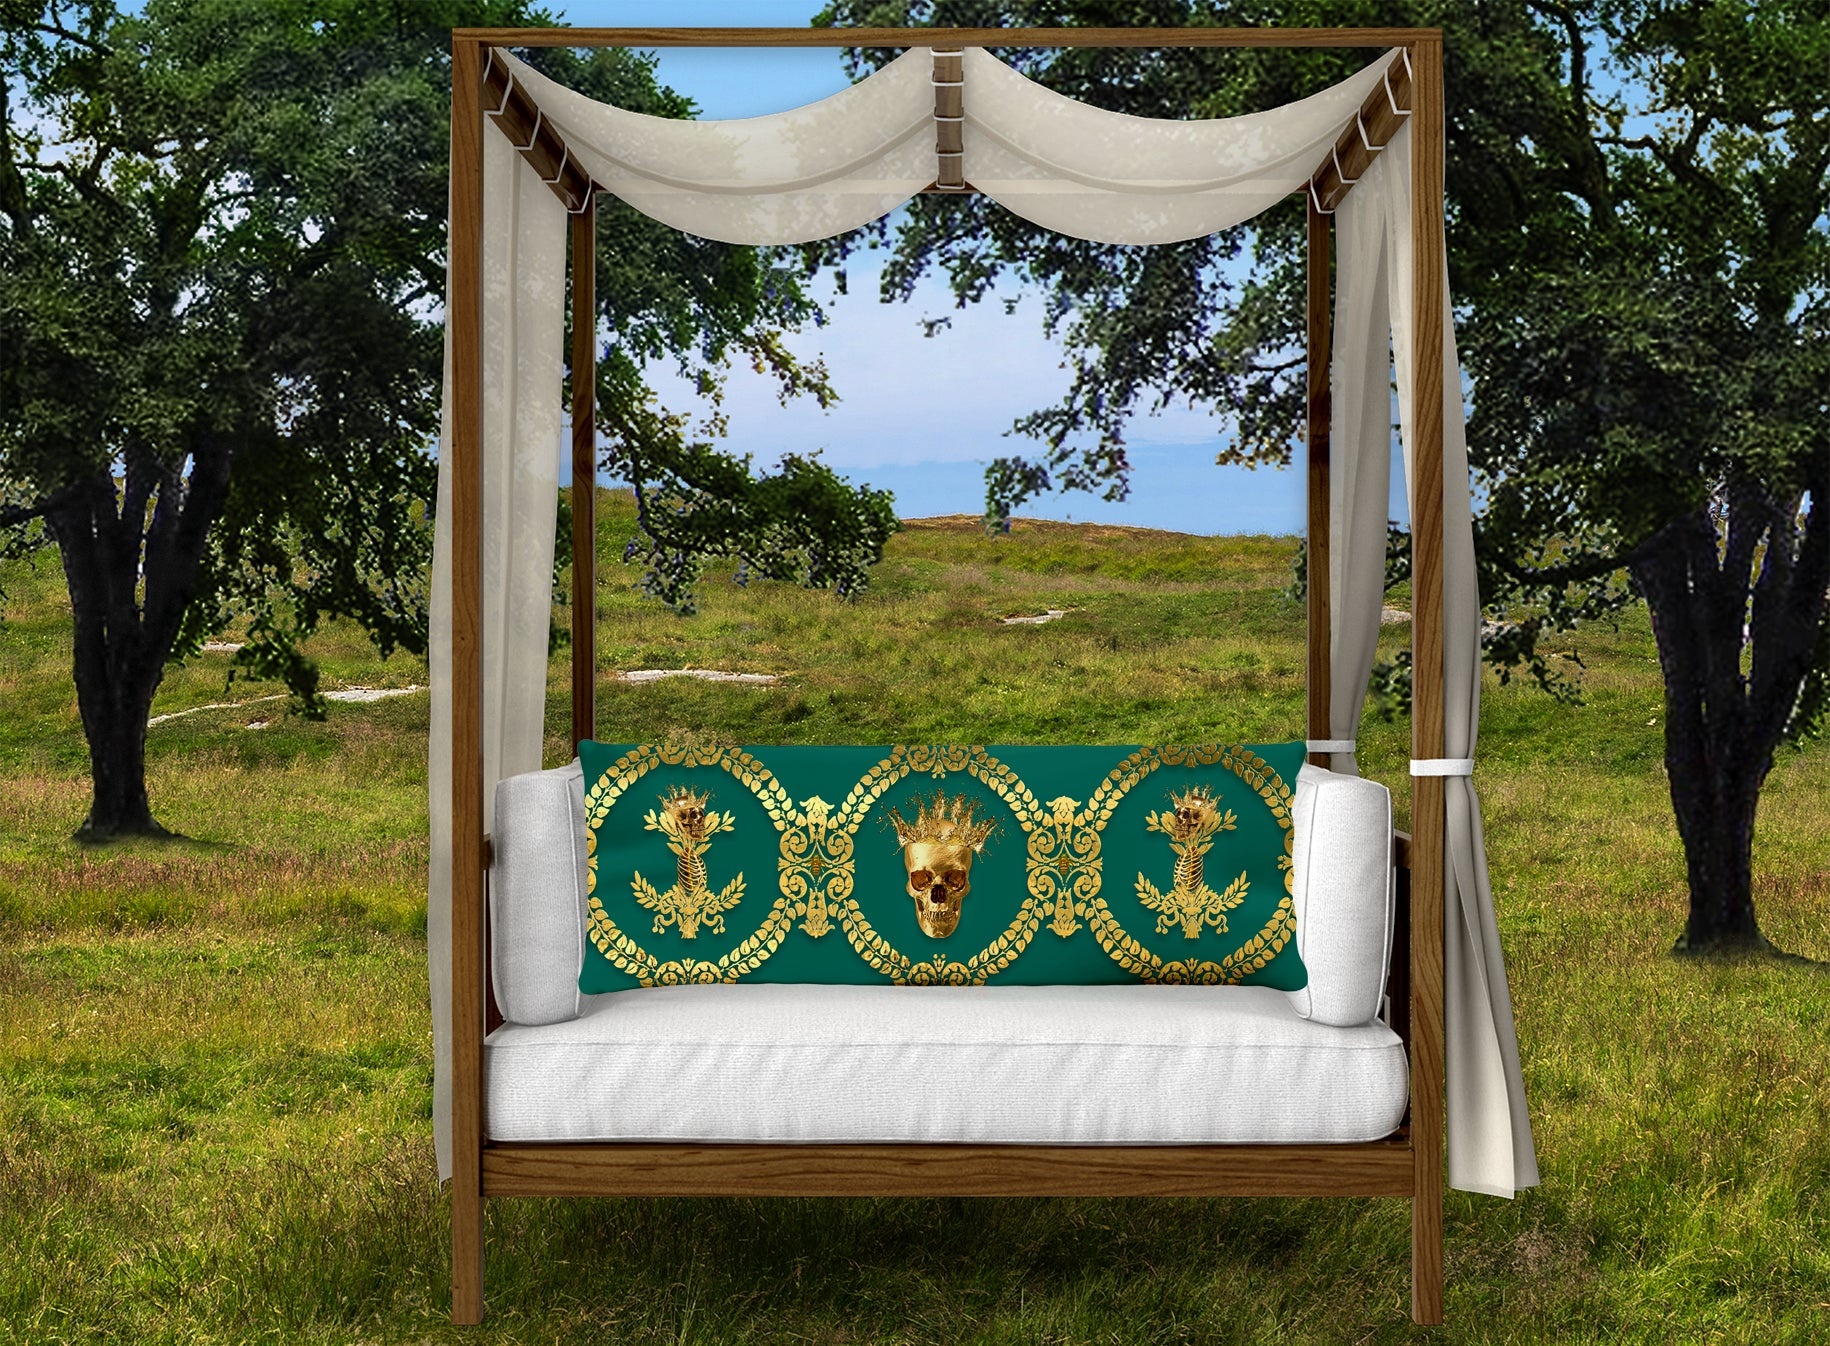 CROWN GOLD SKULL-GOLD RIBS-Body Pillow-PILLOW CASE- color JADE, GREEN, BLUE GREEN